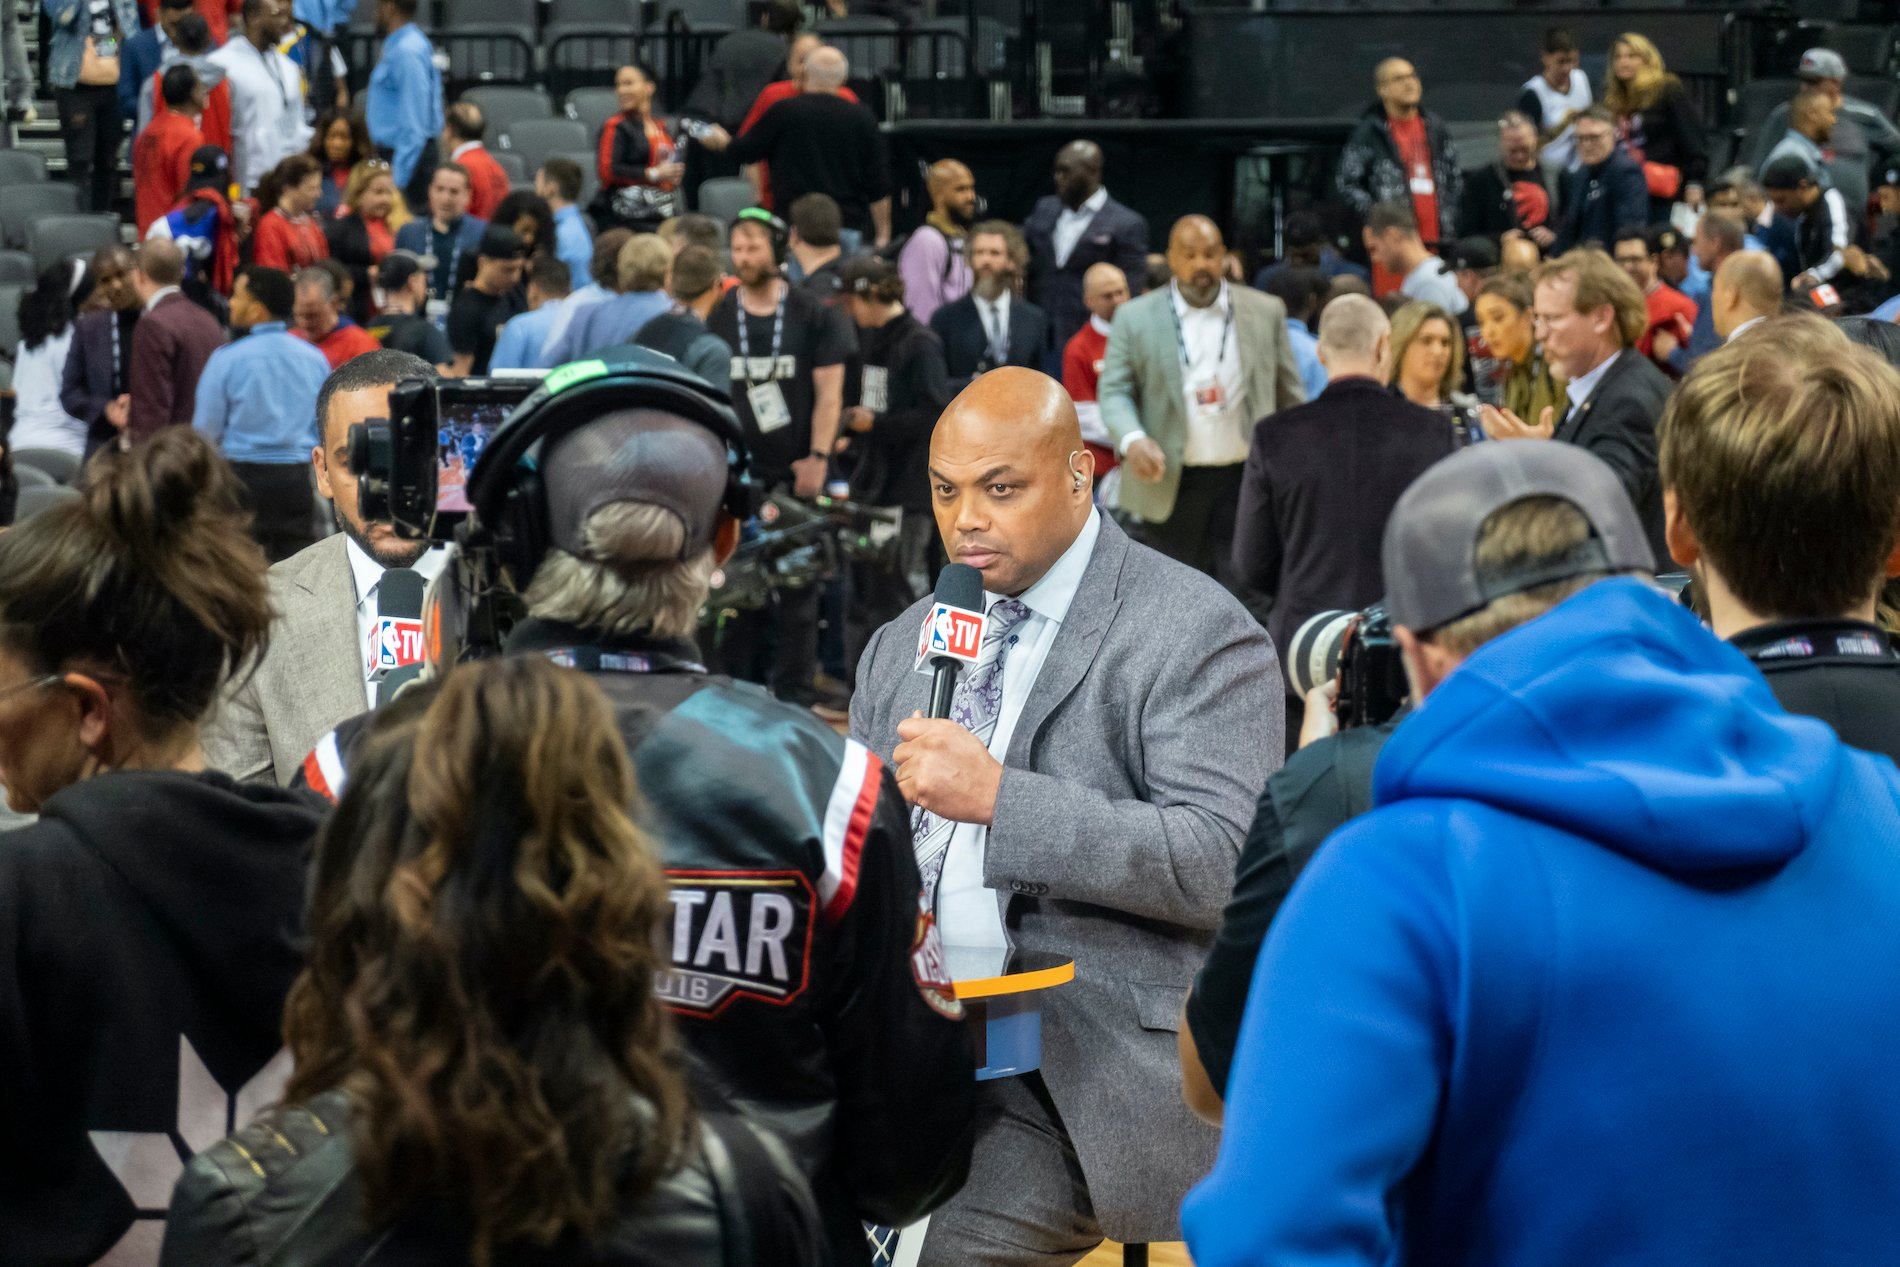 Charles Barkley holds a microphone surrounded by a crowd